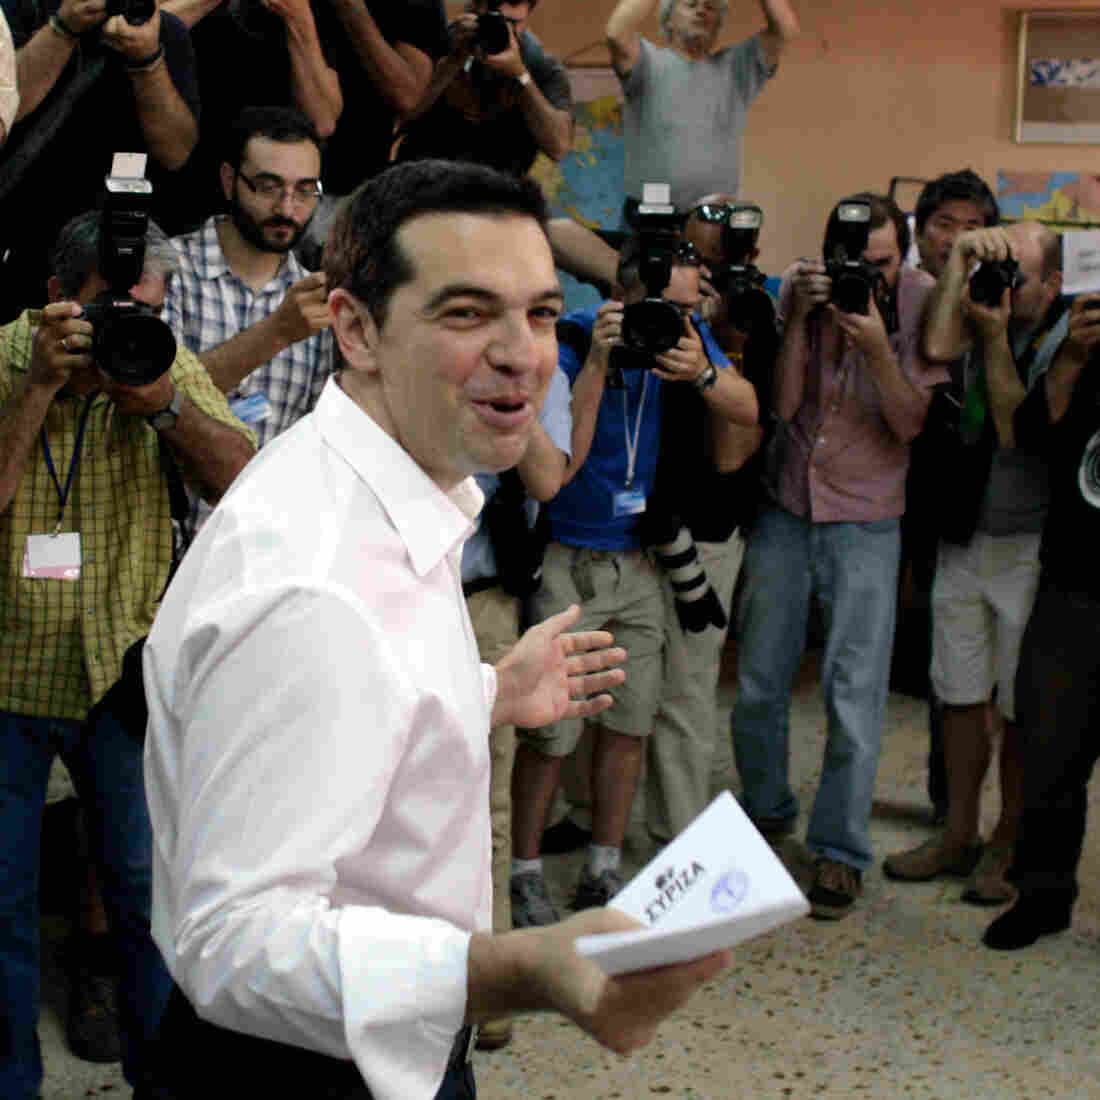 Pro-Bailout Conservative Party Wins Greek Election